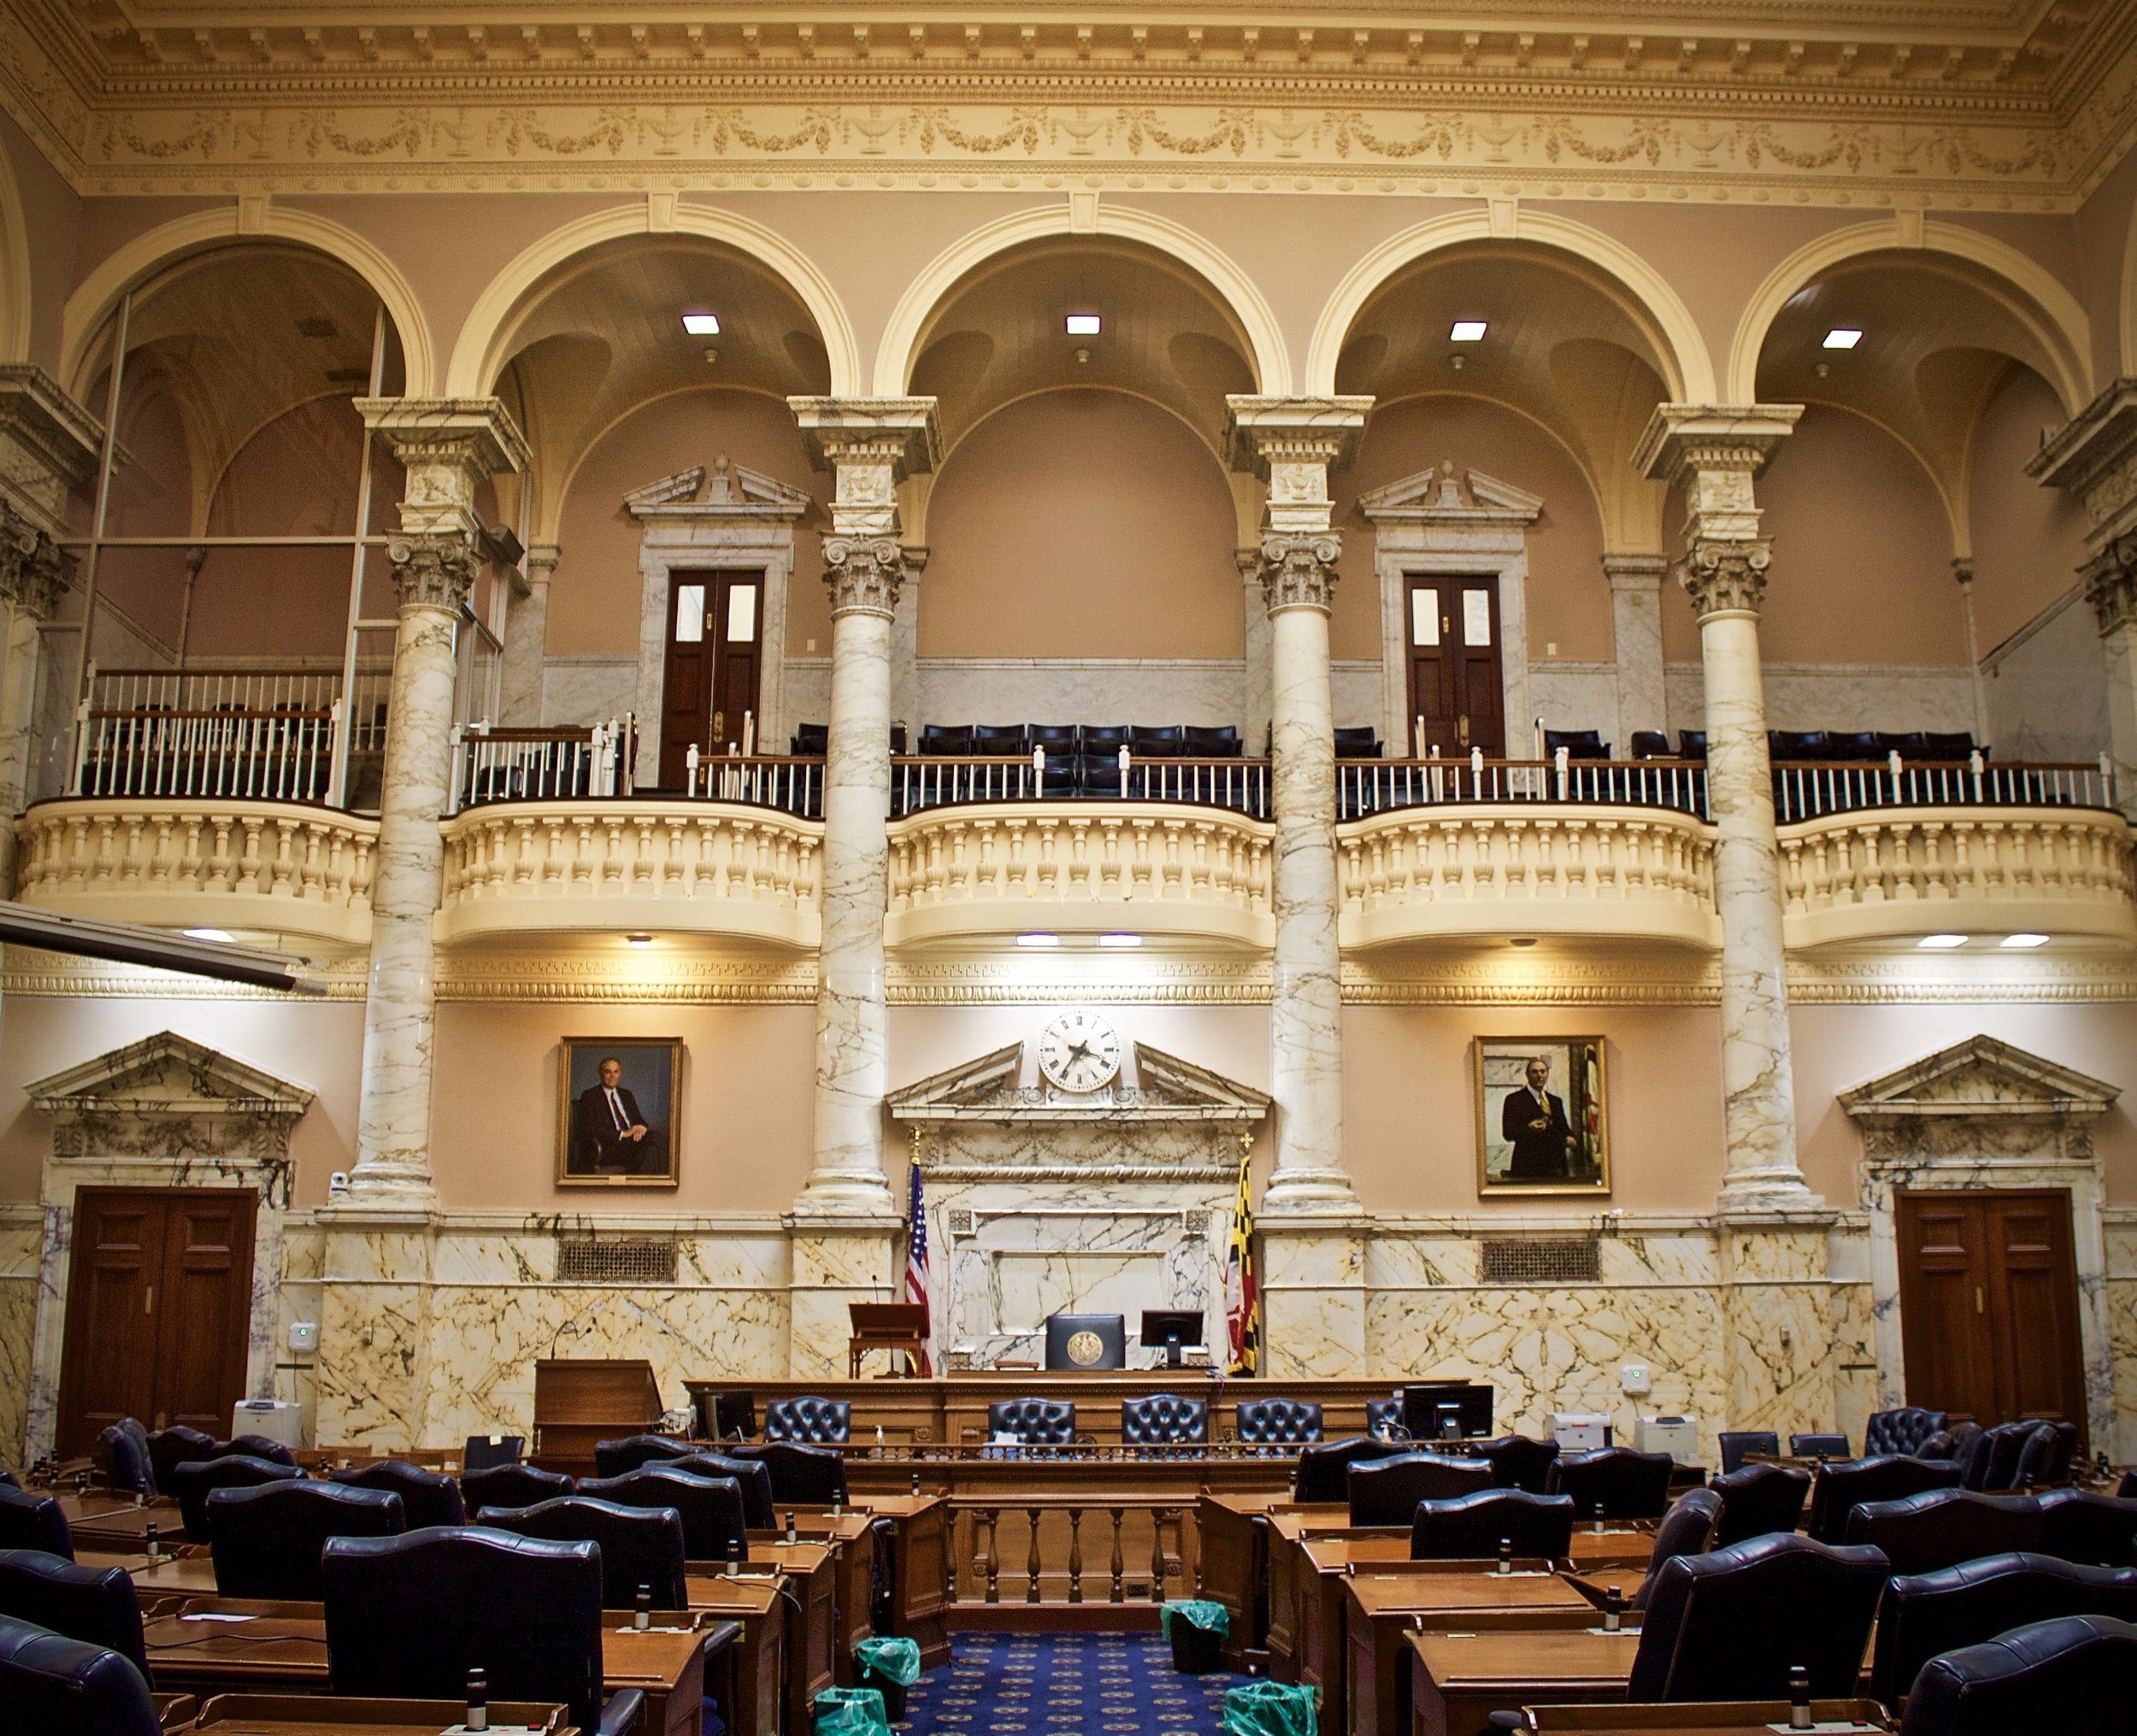 The Maryland State House is free and open to the public - though some rooms will be blocked off if in use